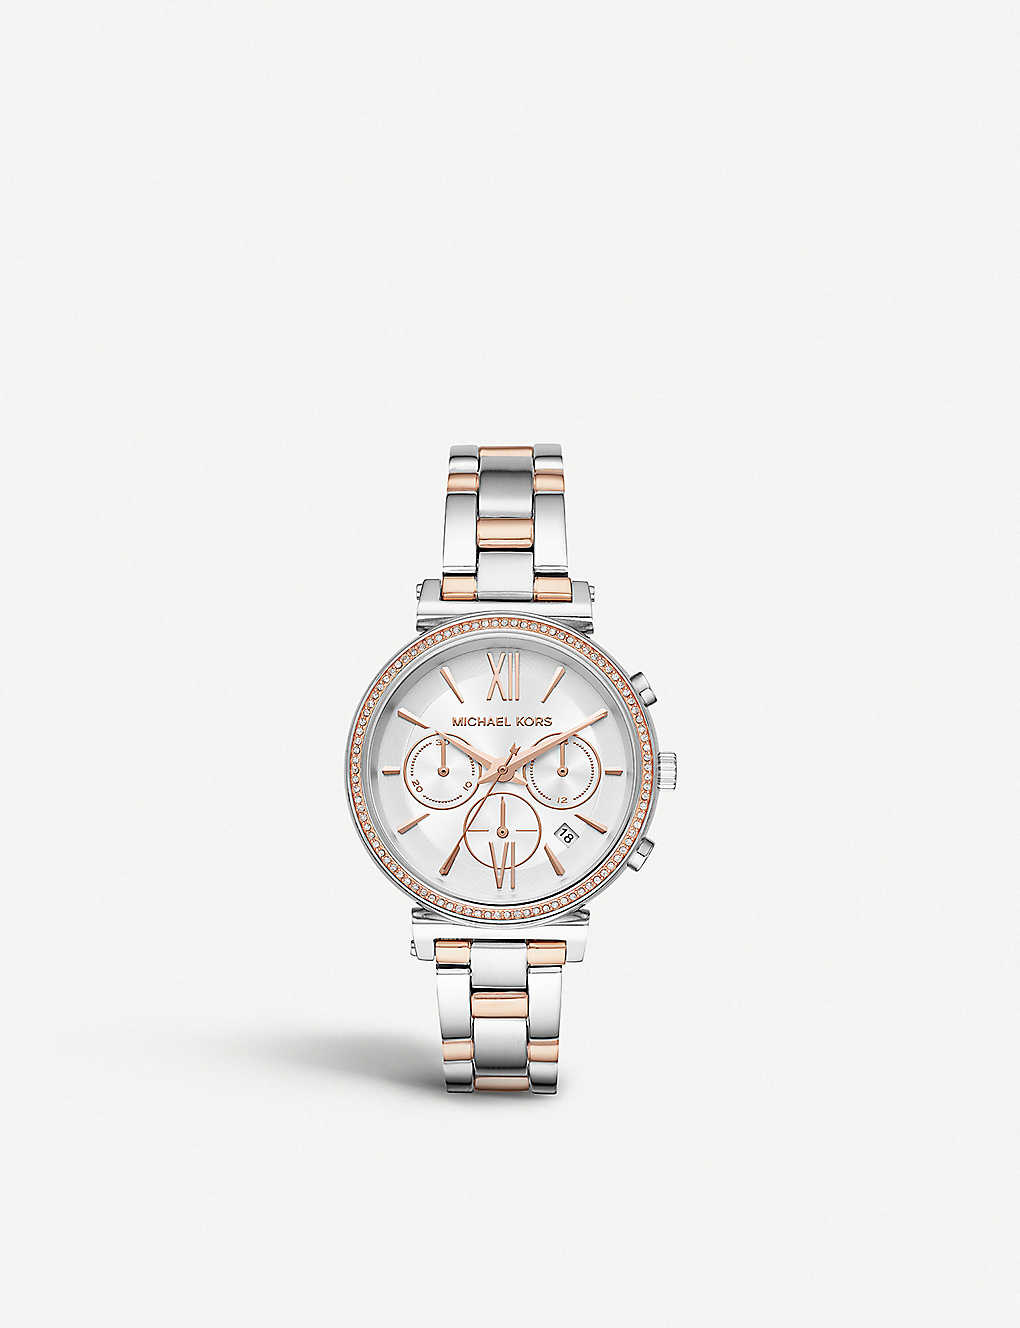 3f08b0003 MICHAEL KORS - MK6558 Sofie two-tone stainless steel chronograph ...